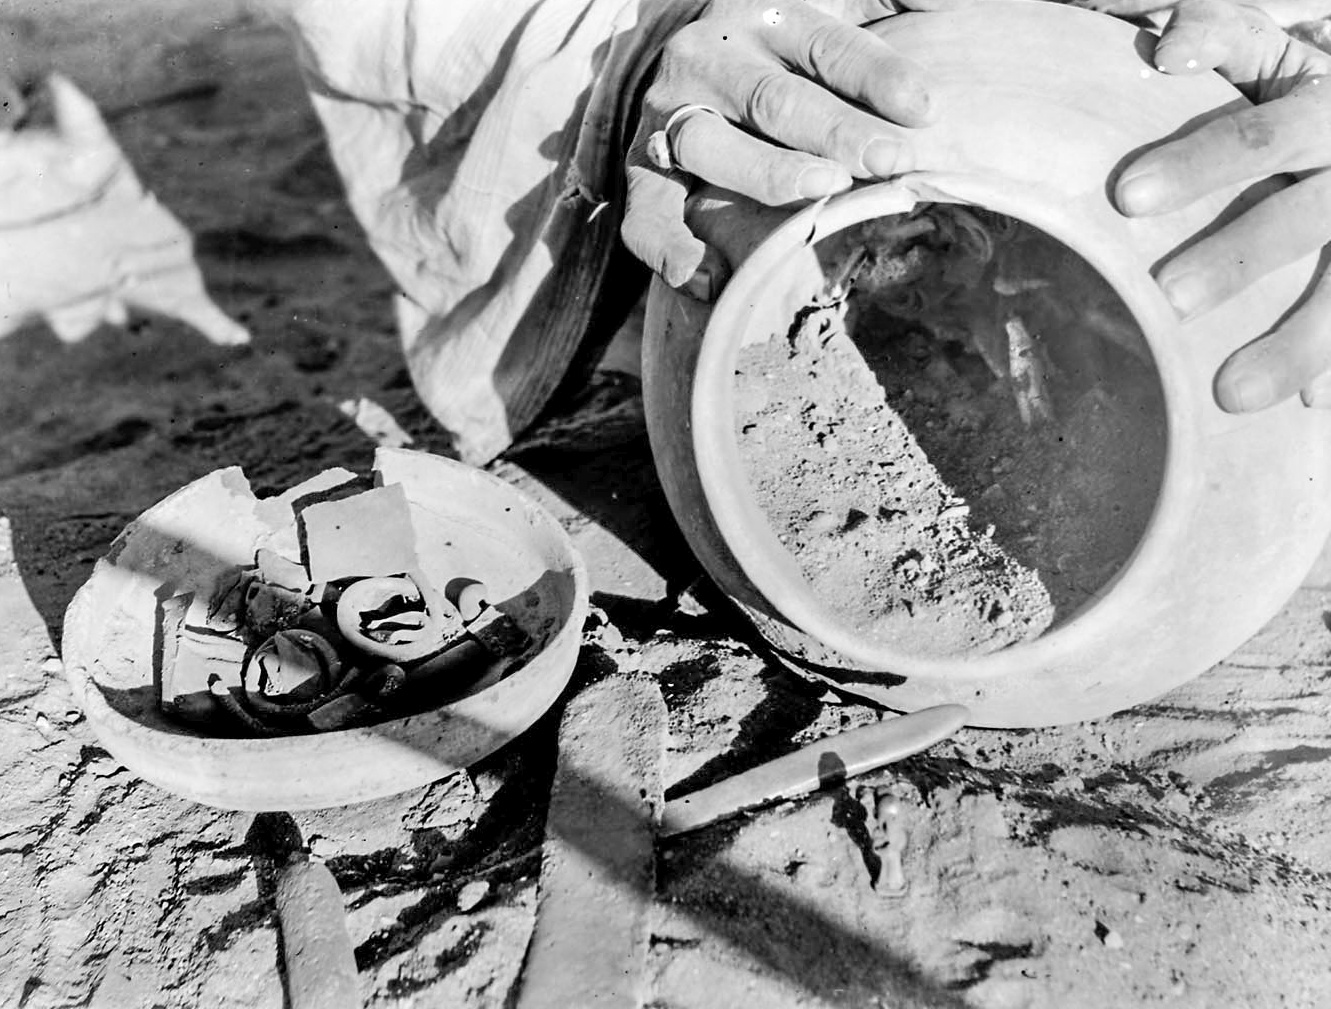 Figure 9, the crock of gold discovered during the 1930-31 season (EES TA30.31.024)